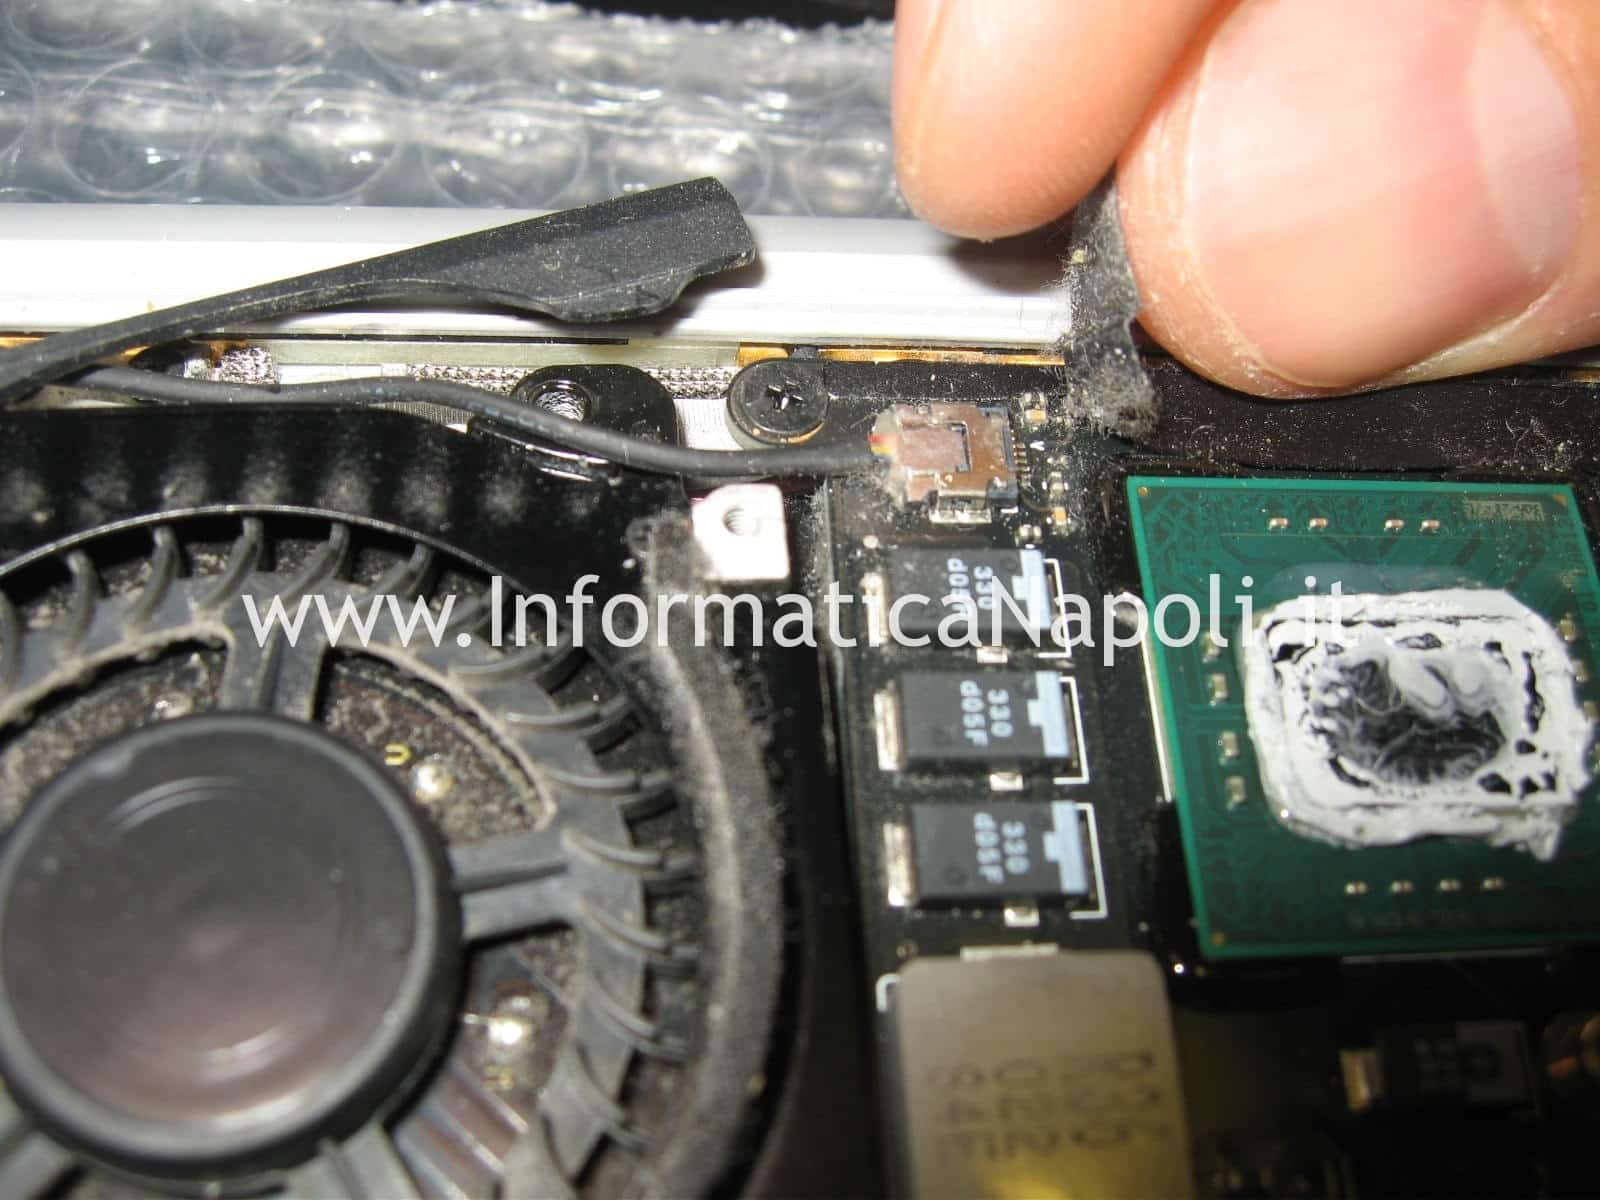 pasta termica macbook air 13 A1237